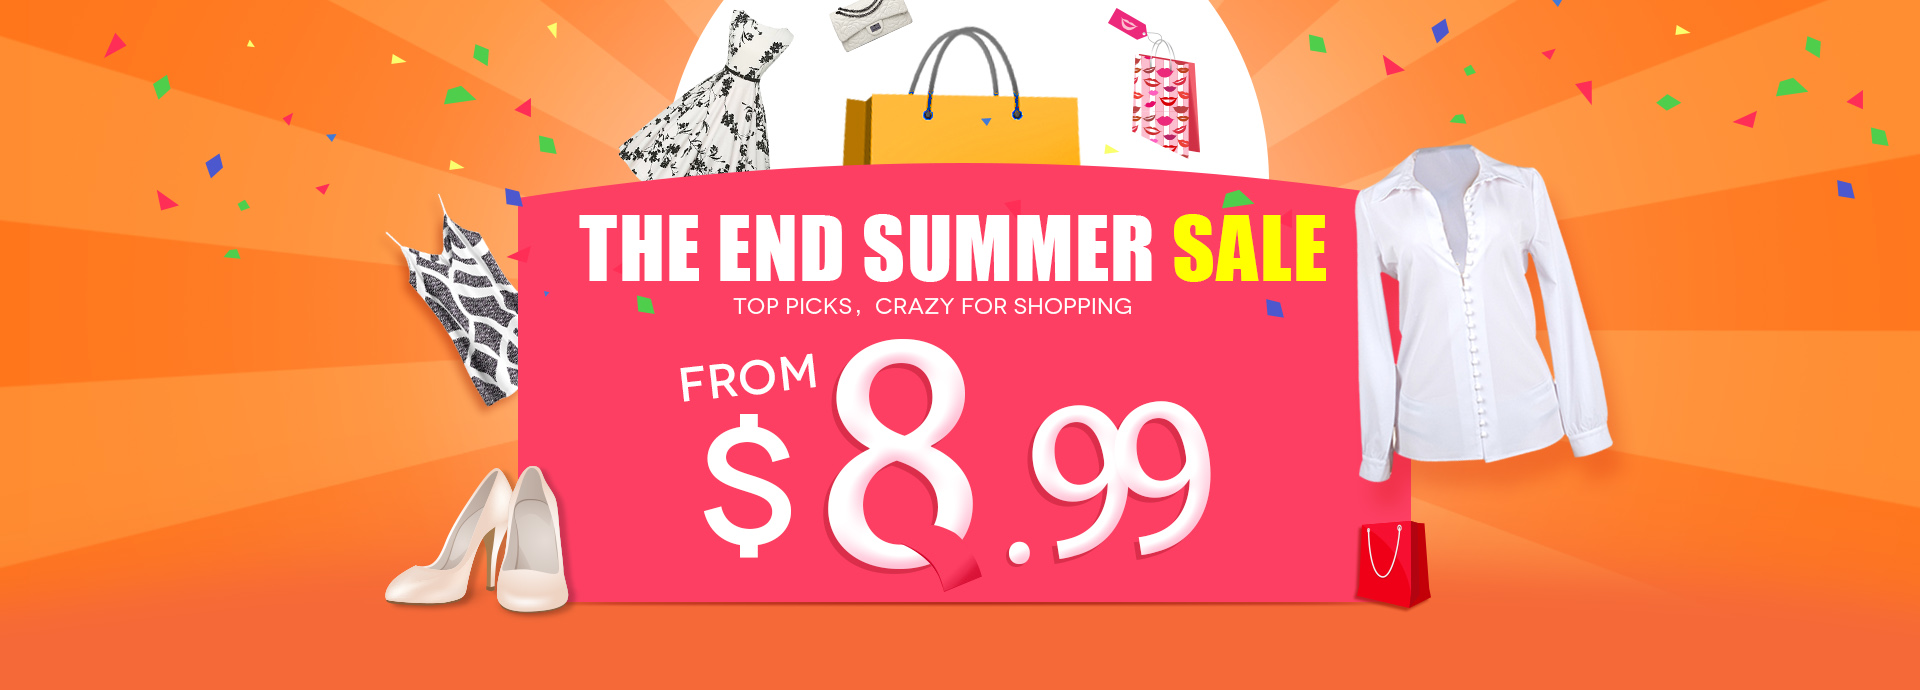 The End Summer Sales